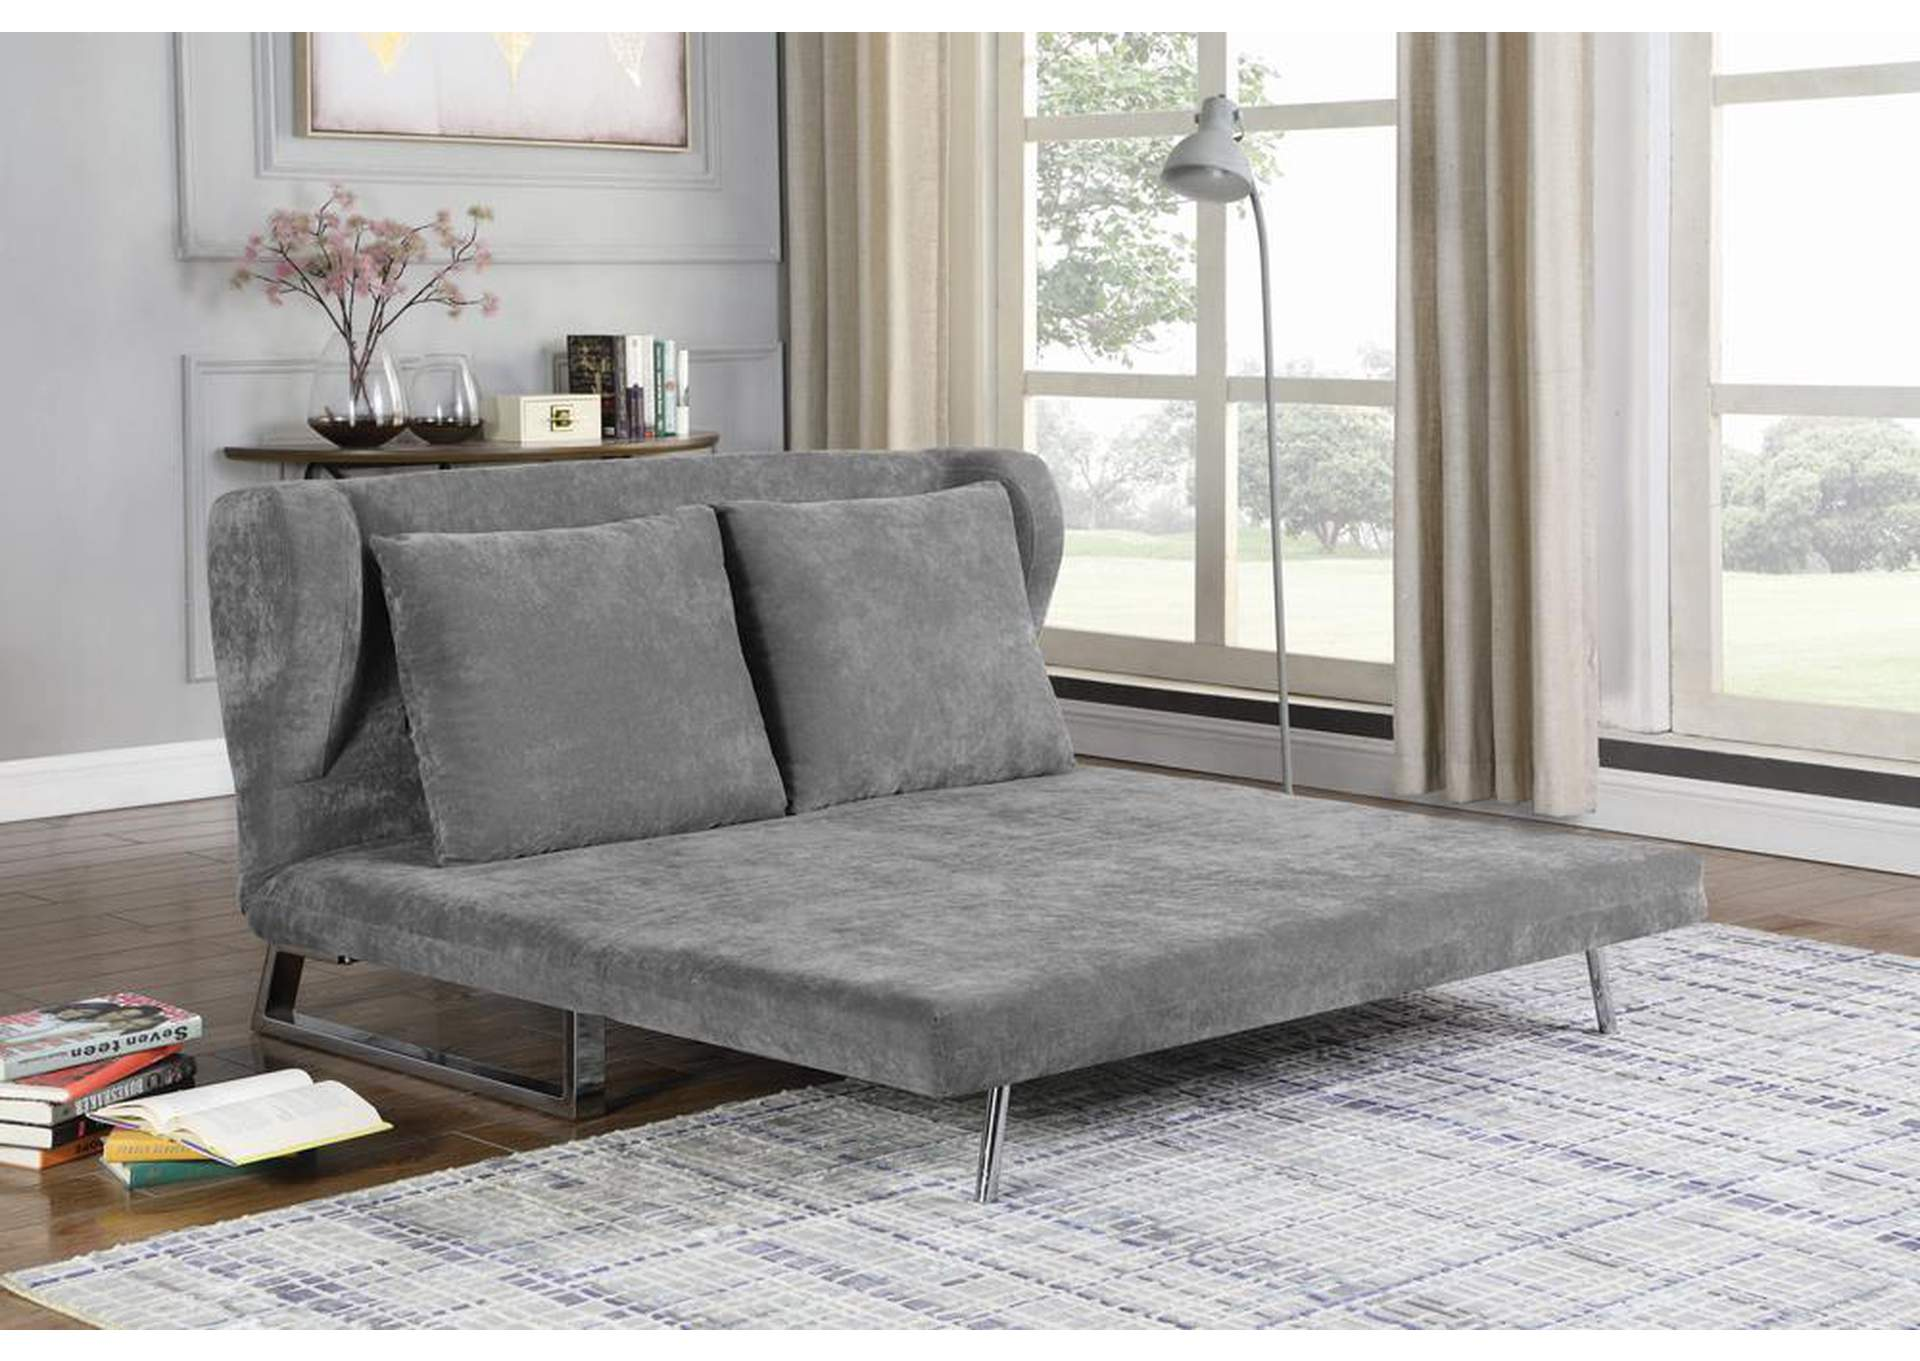 Affordable Furniture Houston Grey Velvet Sofa Bed